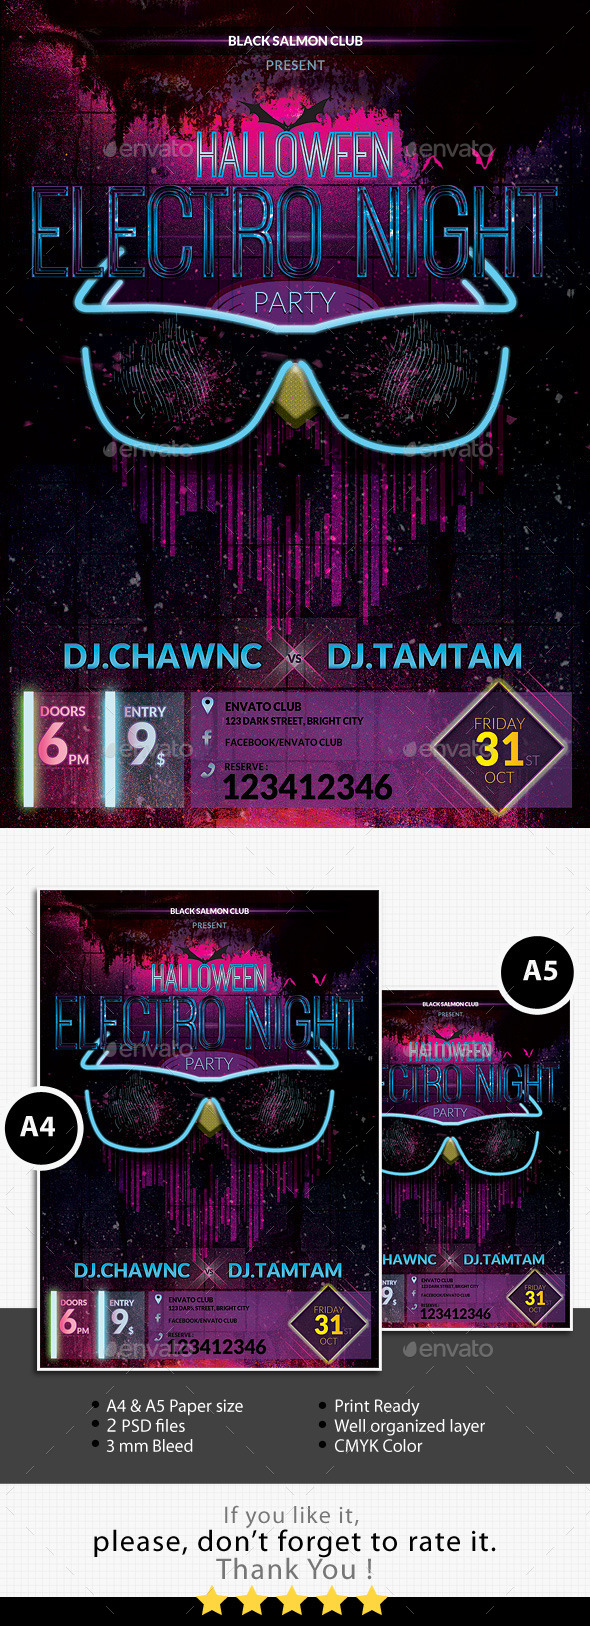 Halloween Electro Night Party Flyer - Clubs & Parties Events